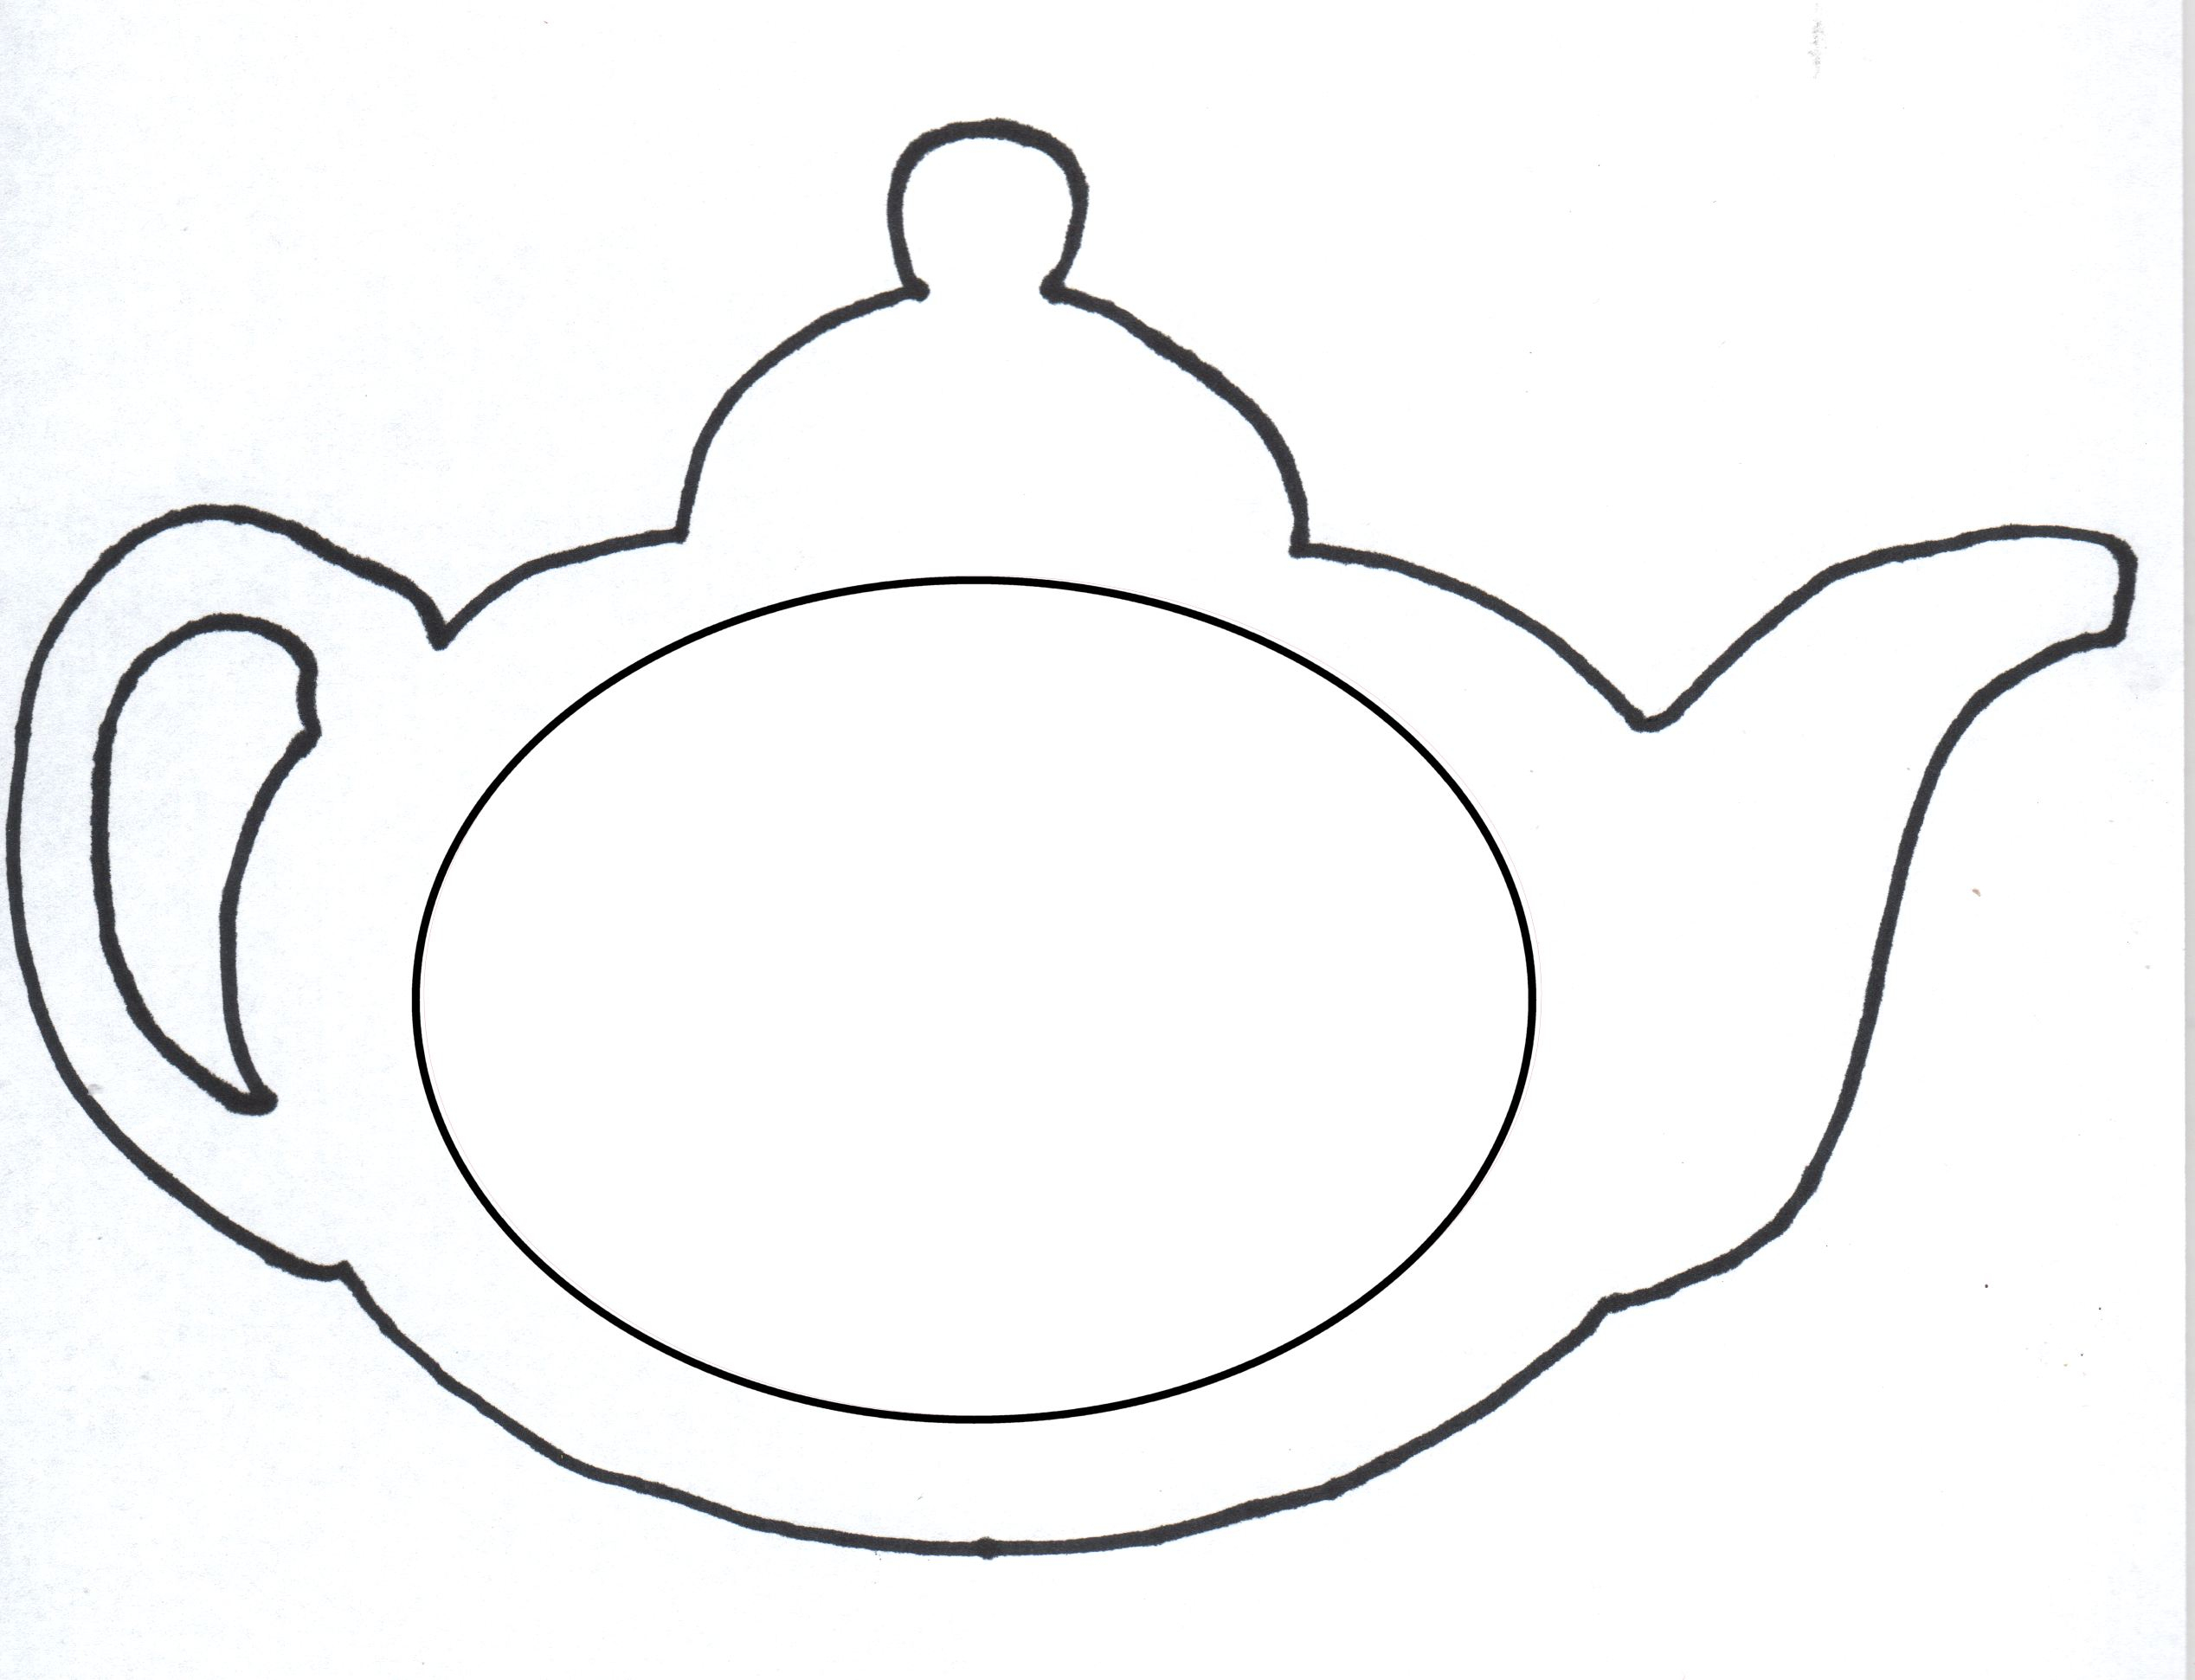 Free Teapot Coloring Book, Download Free Clip Art, Free Clip Art On - Free Printable Tea Cup Coloring Pages